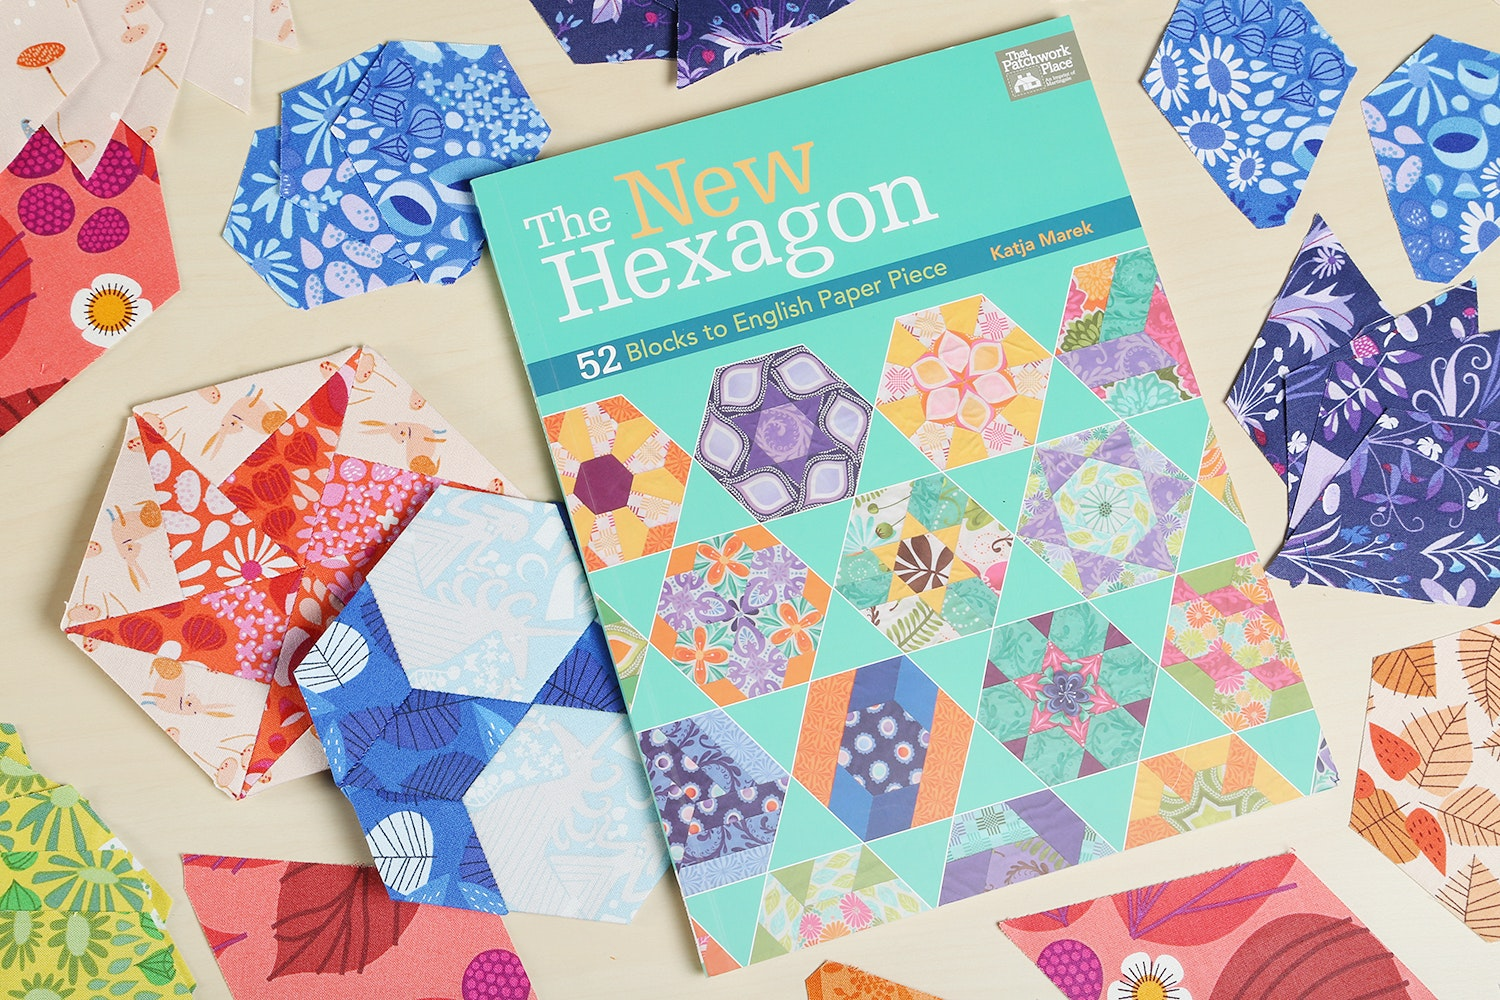 (4) New Hexagon Book by Katja Marek (+ $20)